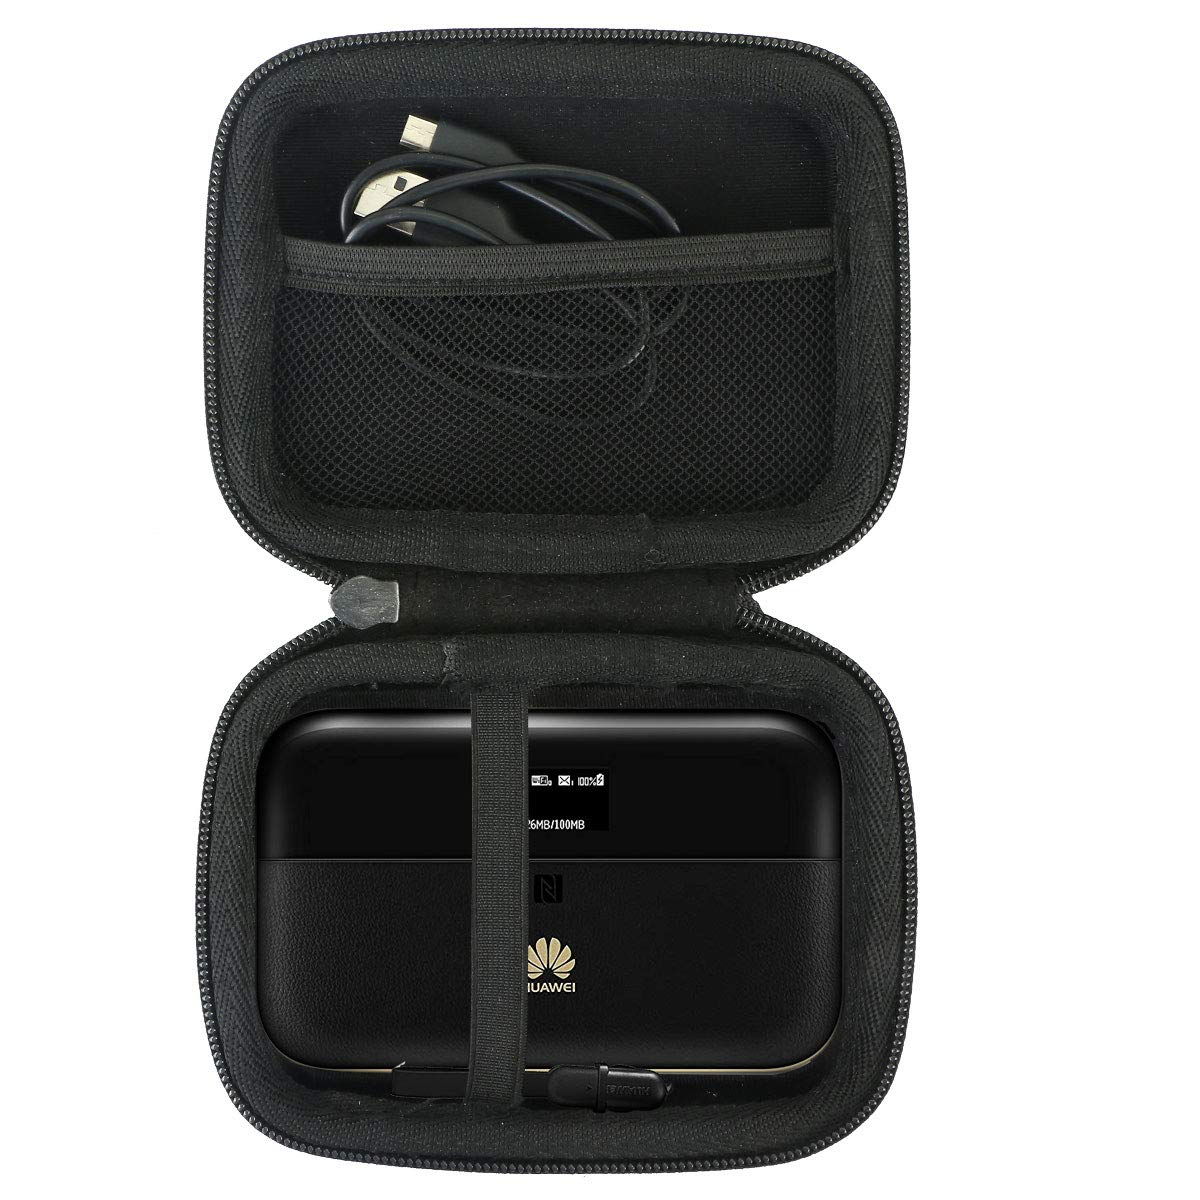 Khanka hard case Carrying travel bag for Huawei E5885 CAT6/ 4G+ Mobile WiFi Hotspot and HUGE Battery Power Bank.(Case only)